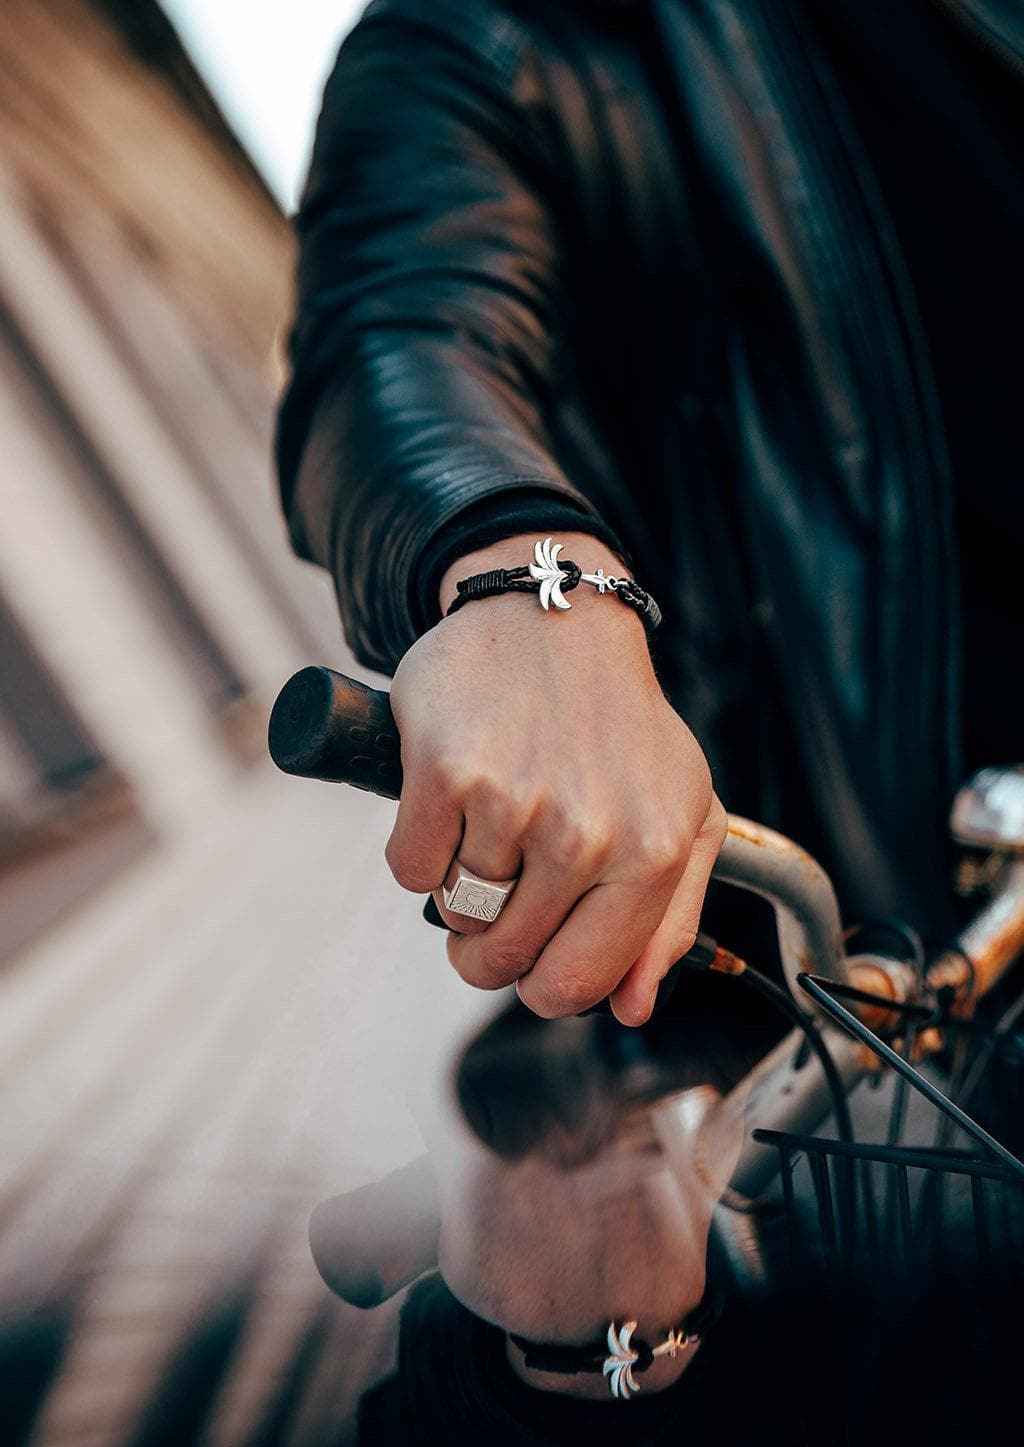 Starlight - Season two Palm anchor bracelet with black leather. On male model riding a motorcycle.